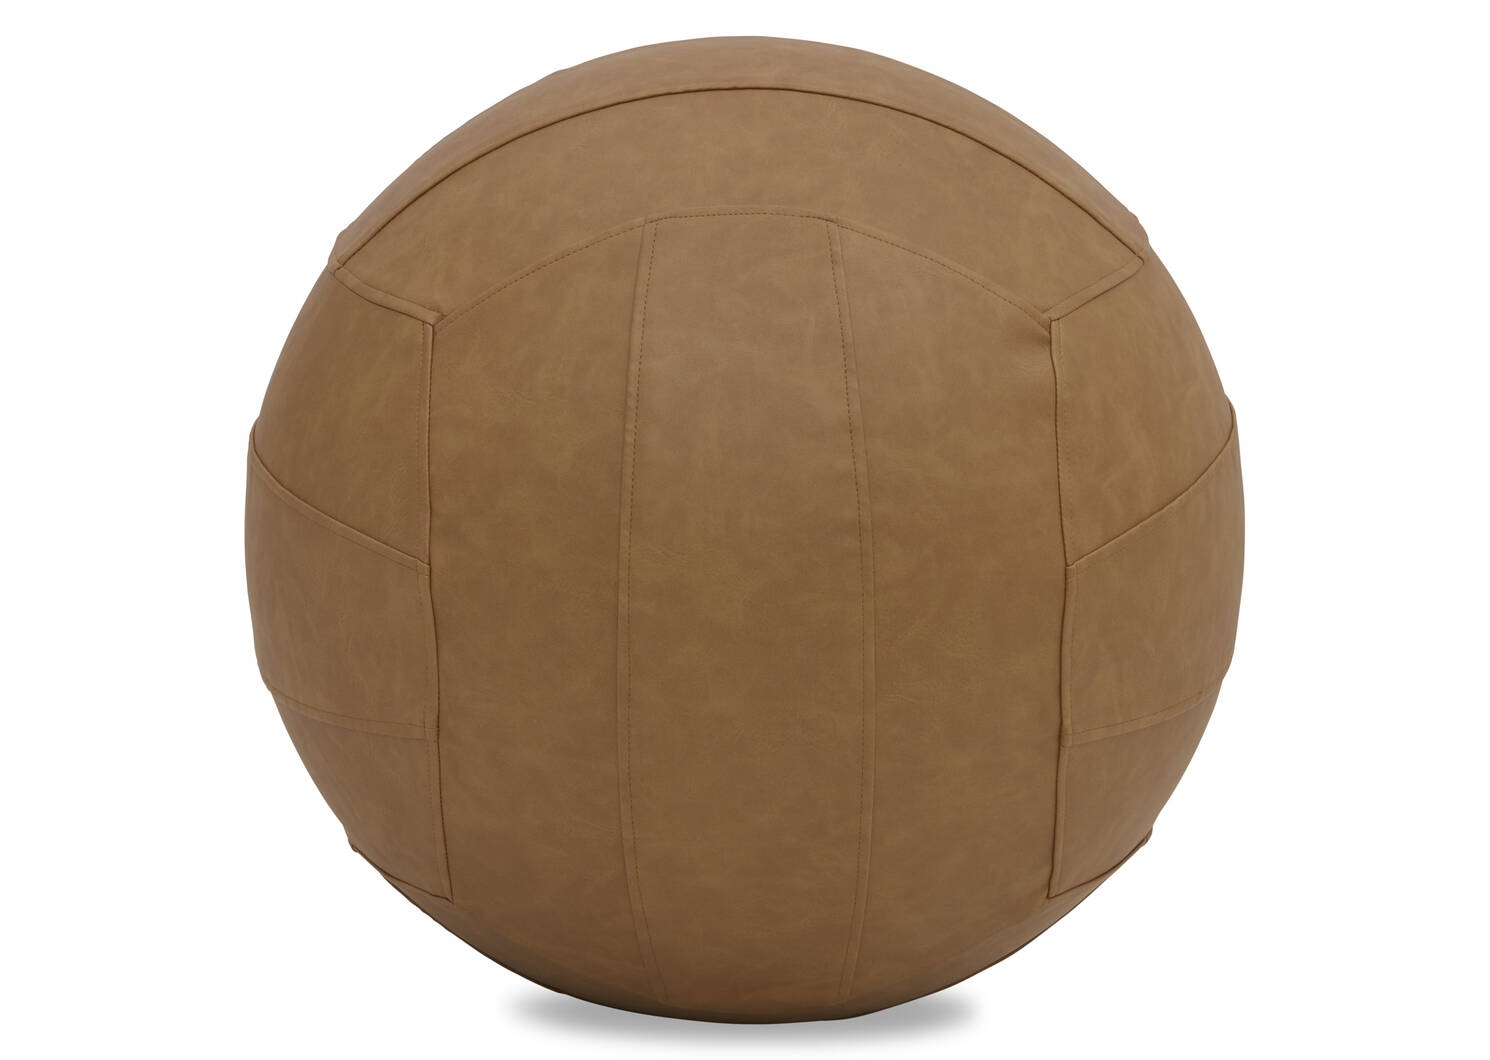 Padma Yoga Ball